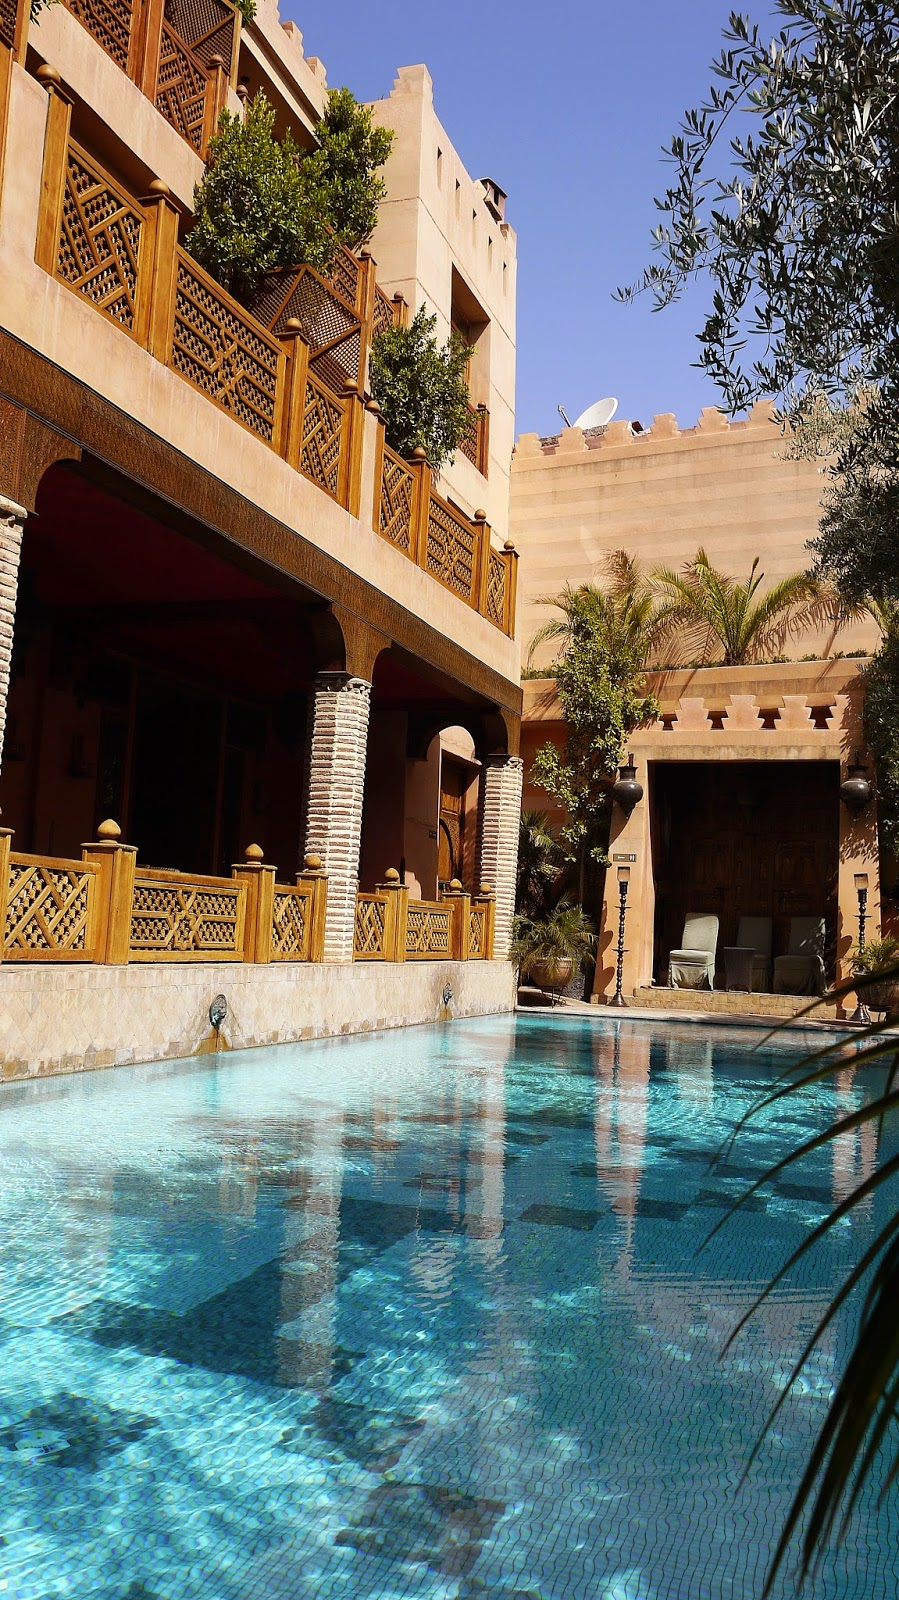 Maison Thé La Maison Arabe: A Luxurious, Historical Retreat In